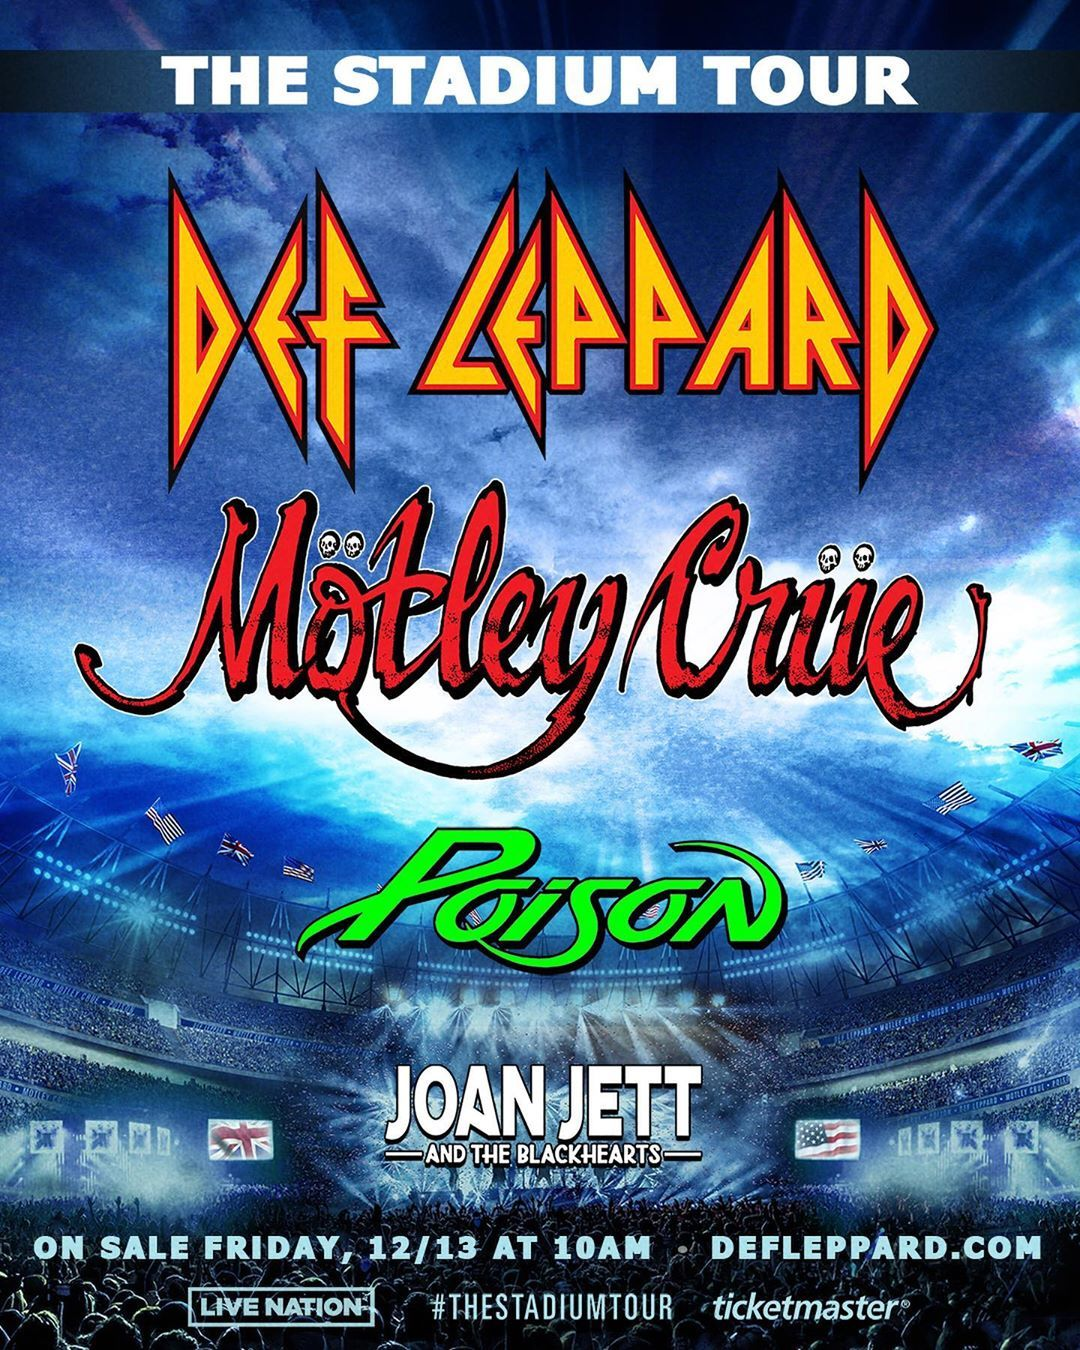 How Do You Get Presale Tickets To Motley Crue